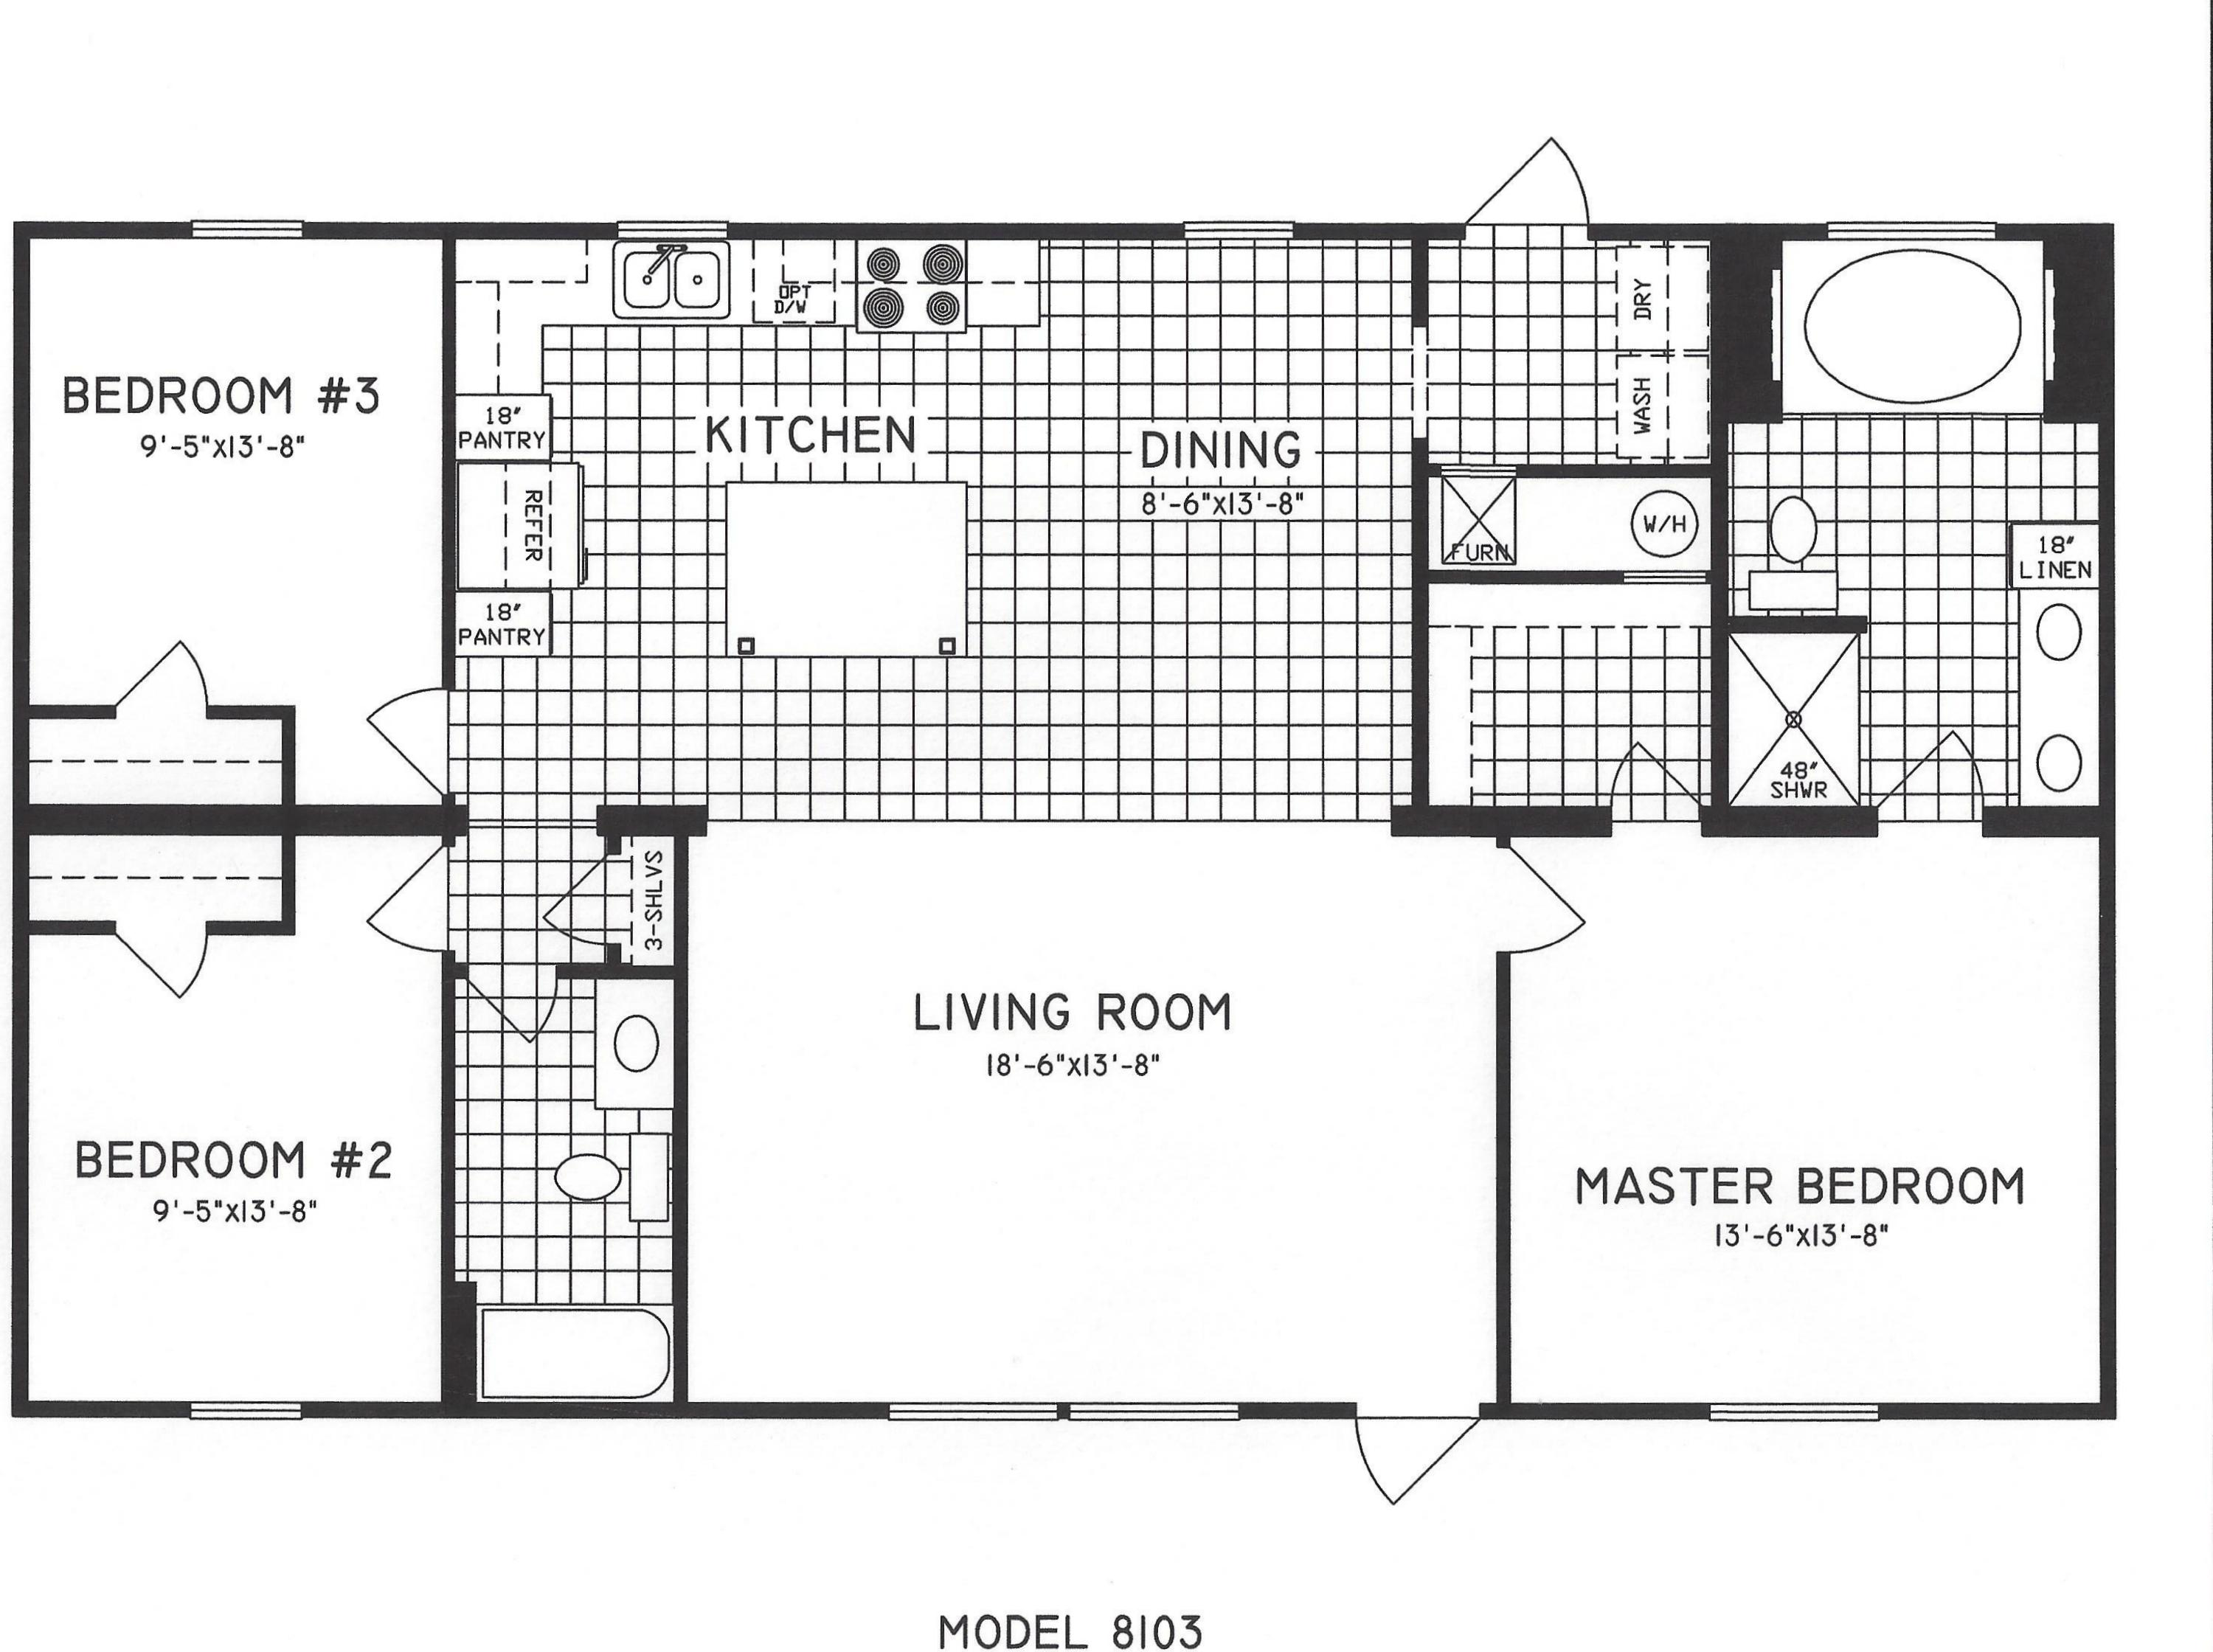 3 bedroom 2 bath floor plan part - 30: 3 bedroom 2 bath floor